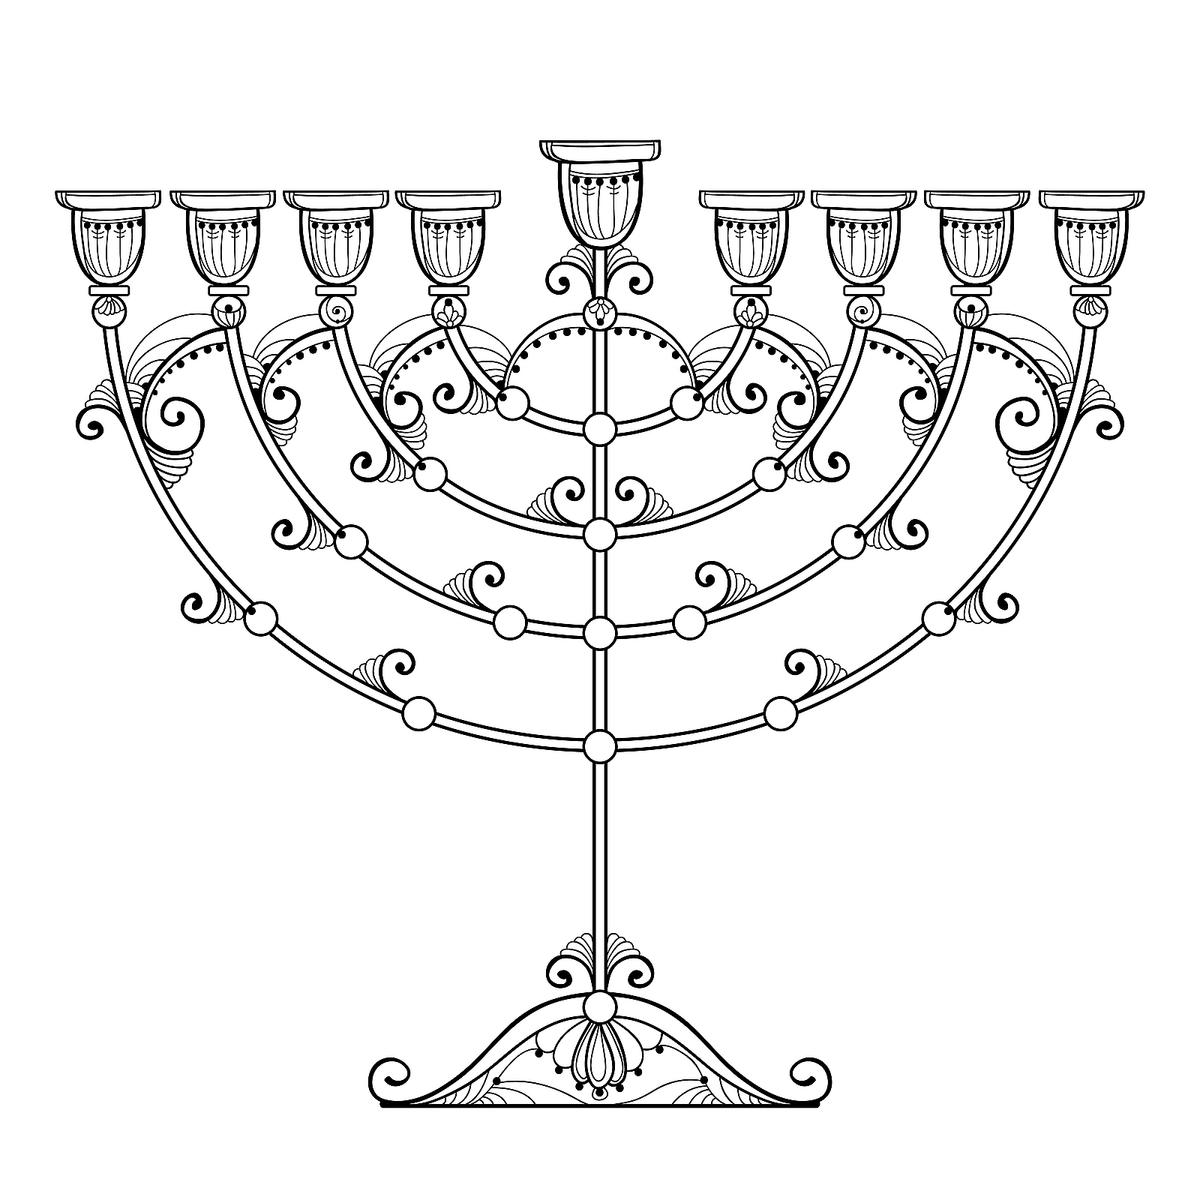 Hanukkah Coloring Pages For Kids Free Printable Coloring